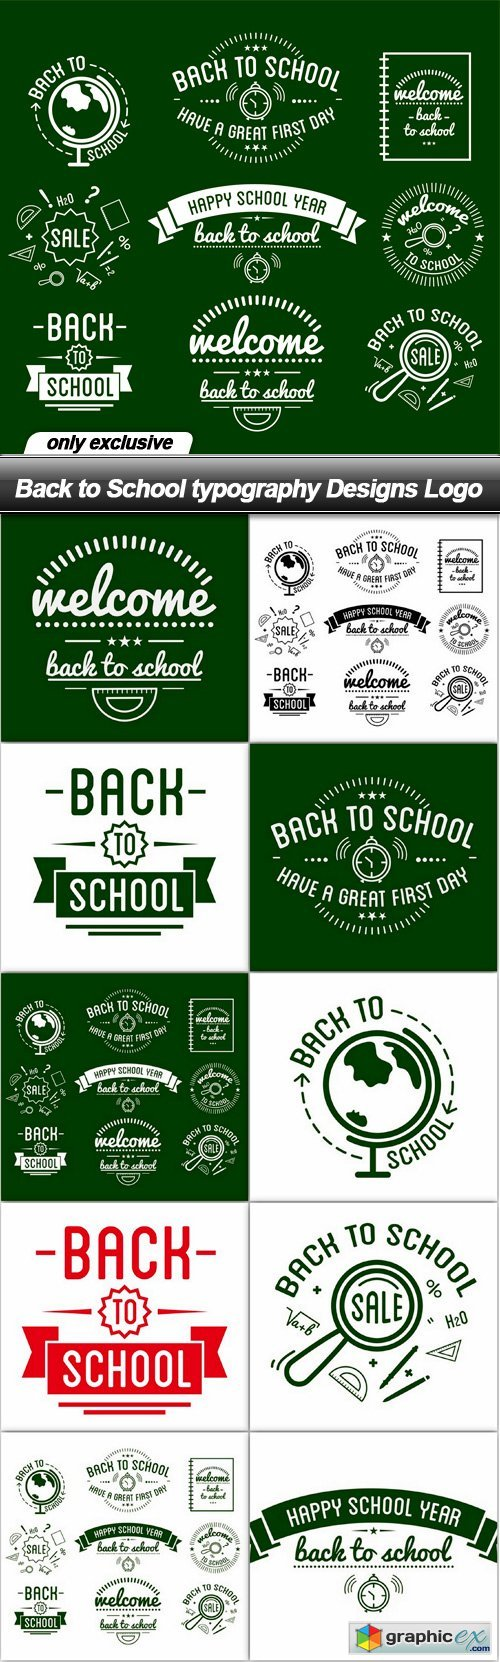 Back to School typography Designs Logo - 10 EPS